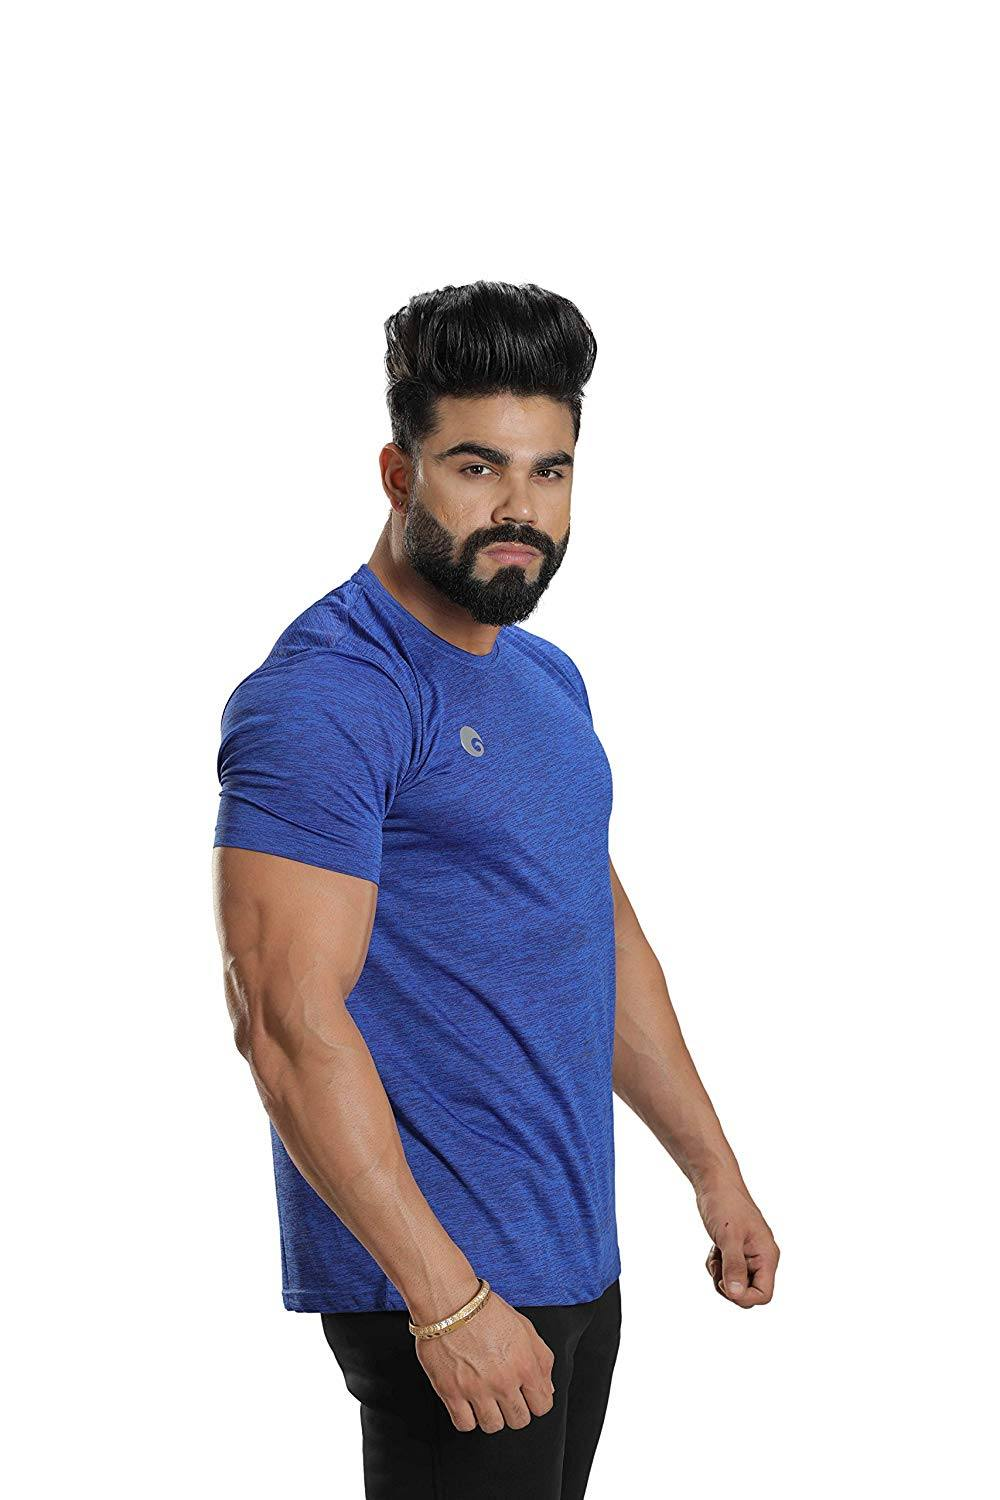 Omtex-Sports-T-Shirt-1802-for-Men1